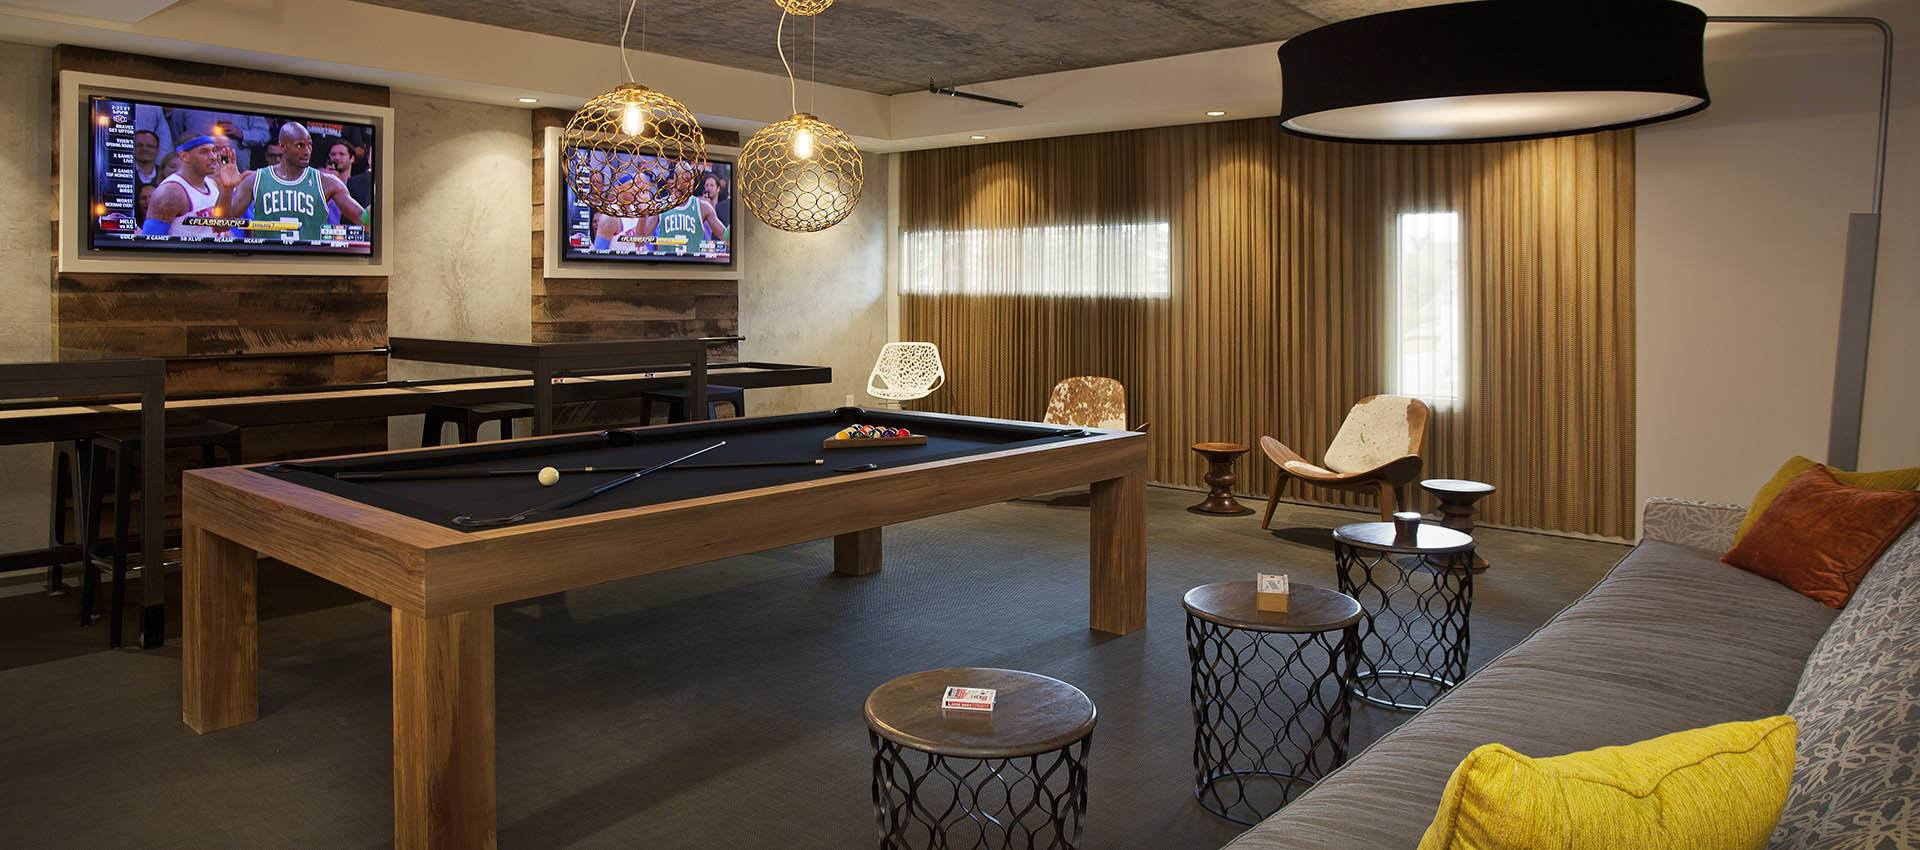 Pool Table at apartments in Glendale, CA